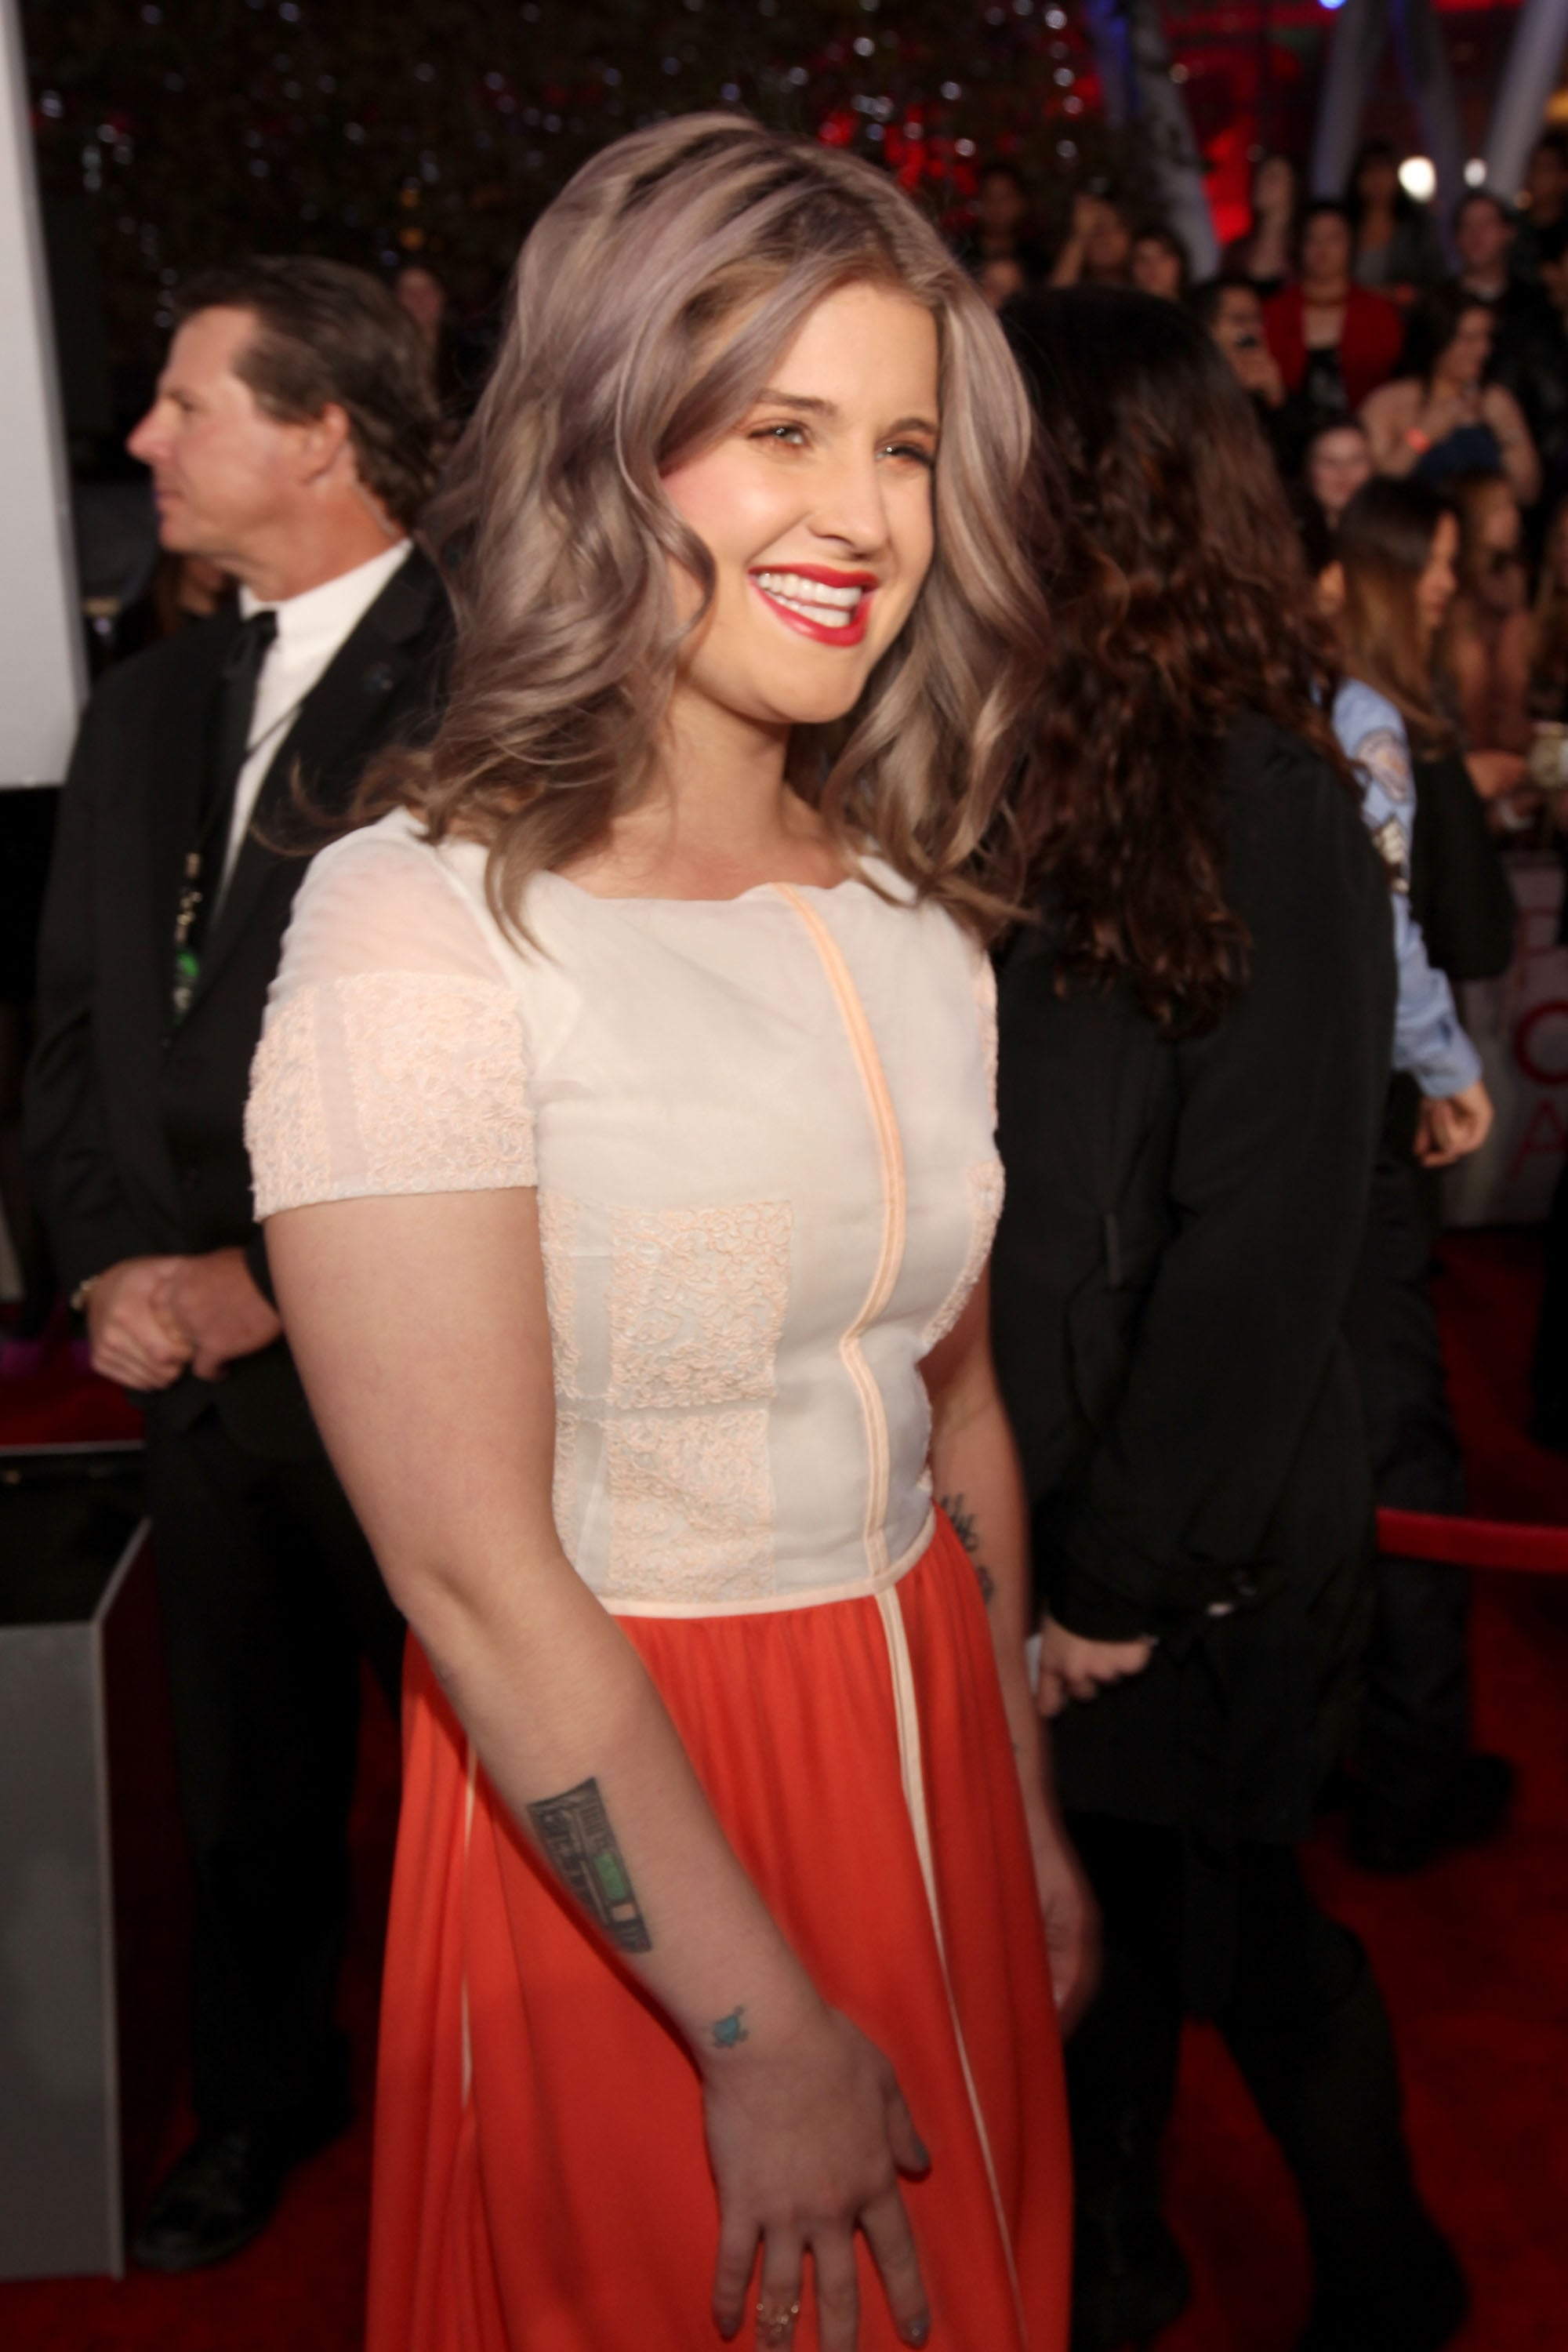 Kelly Osbourne in an orange dress.